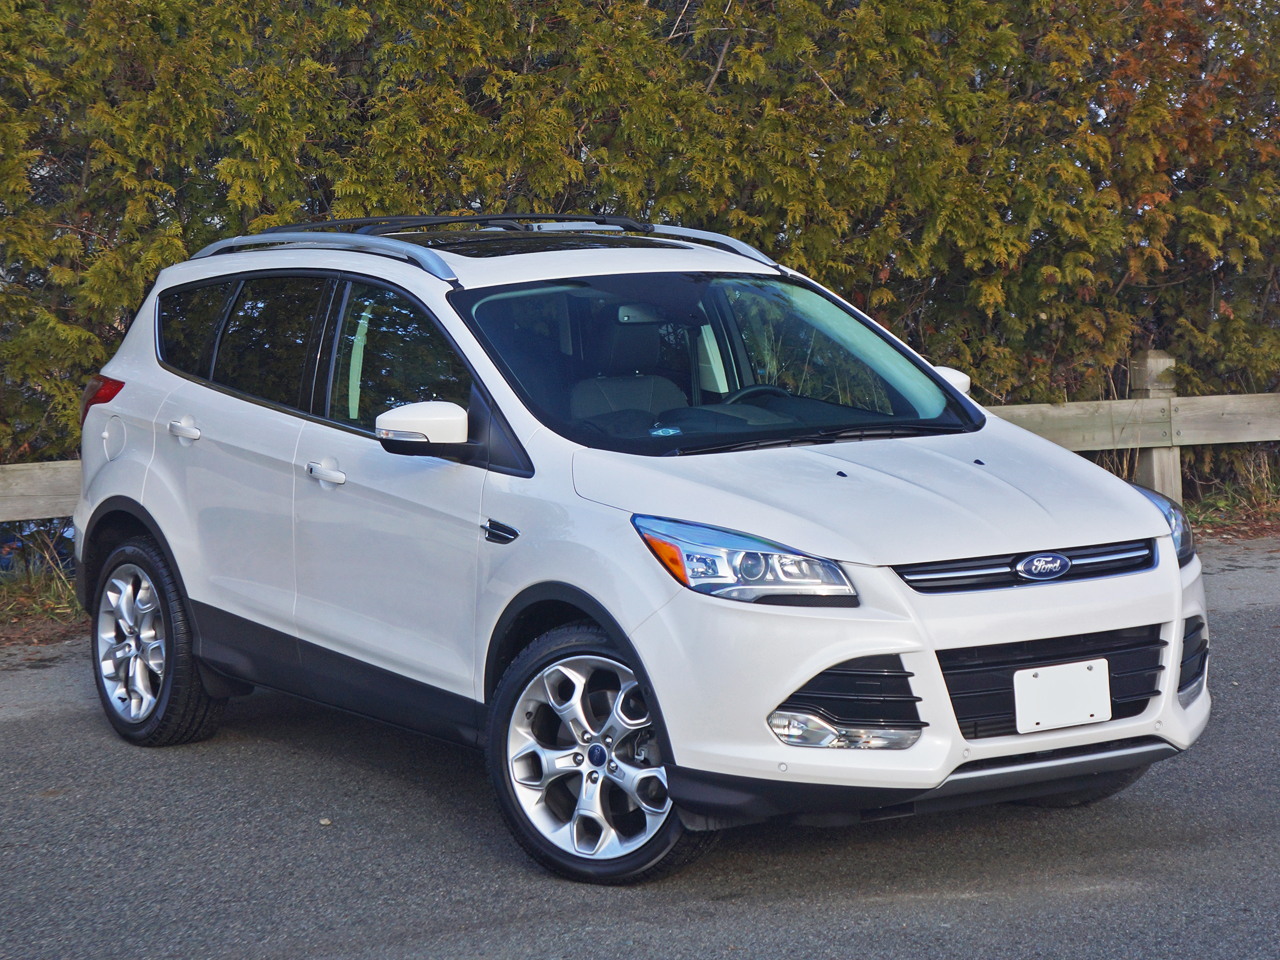 2016 ford escape titanium 4wd road test review carcostcanada